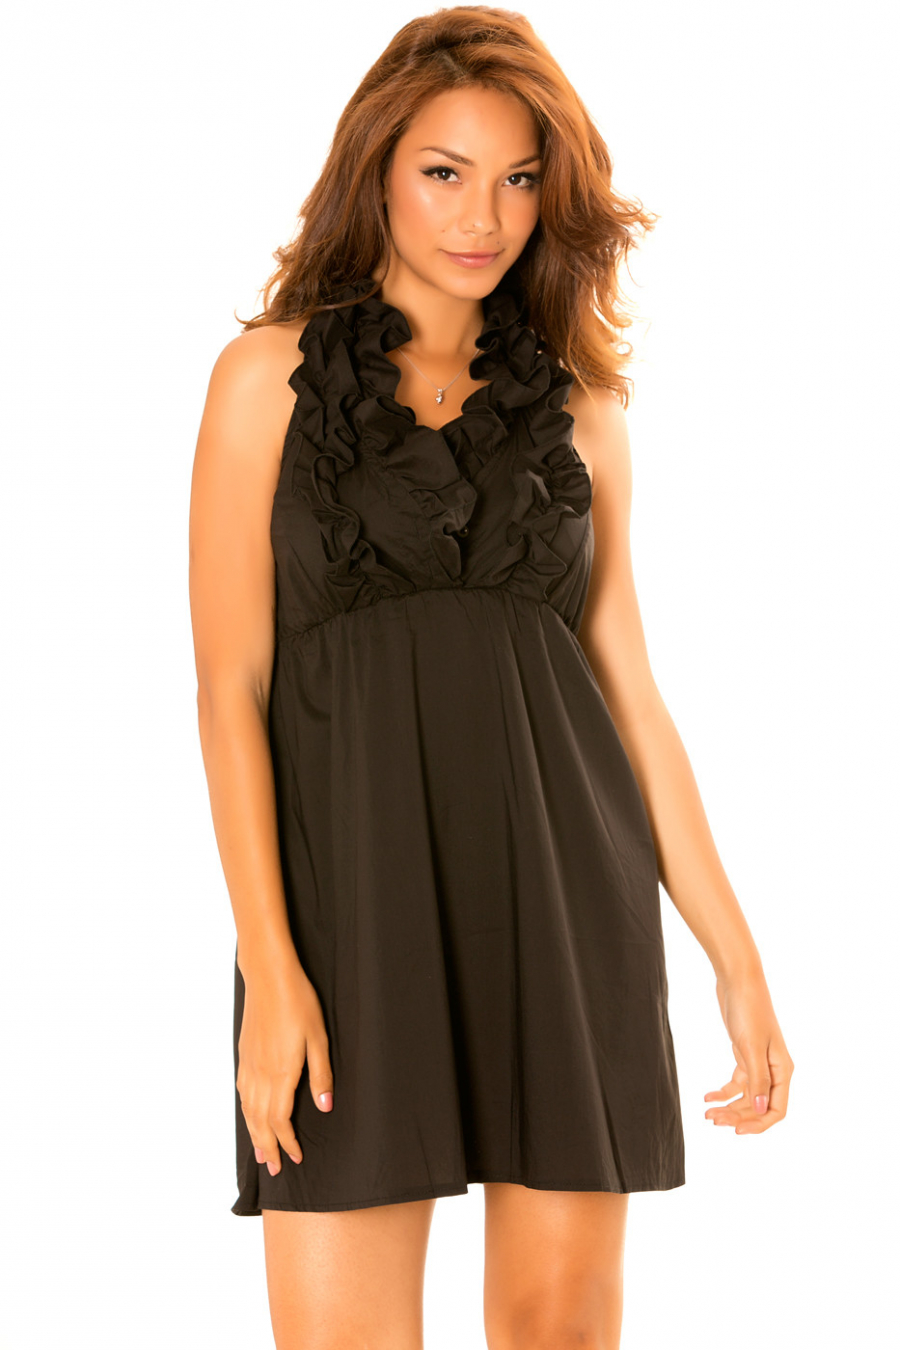 Black dress with frilly collar and open back. Trendy dress. 930